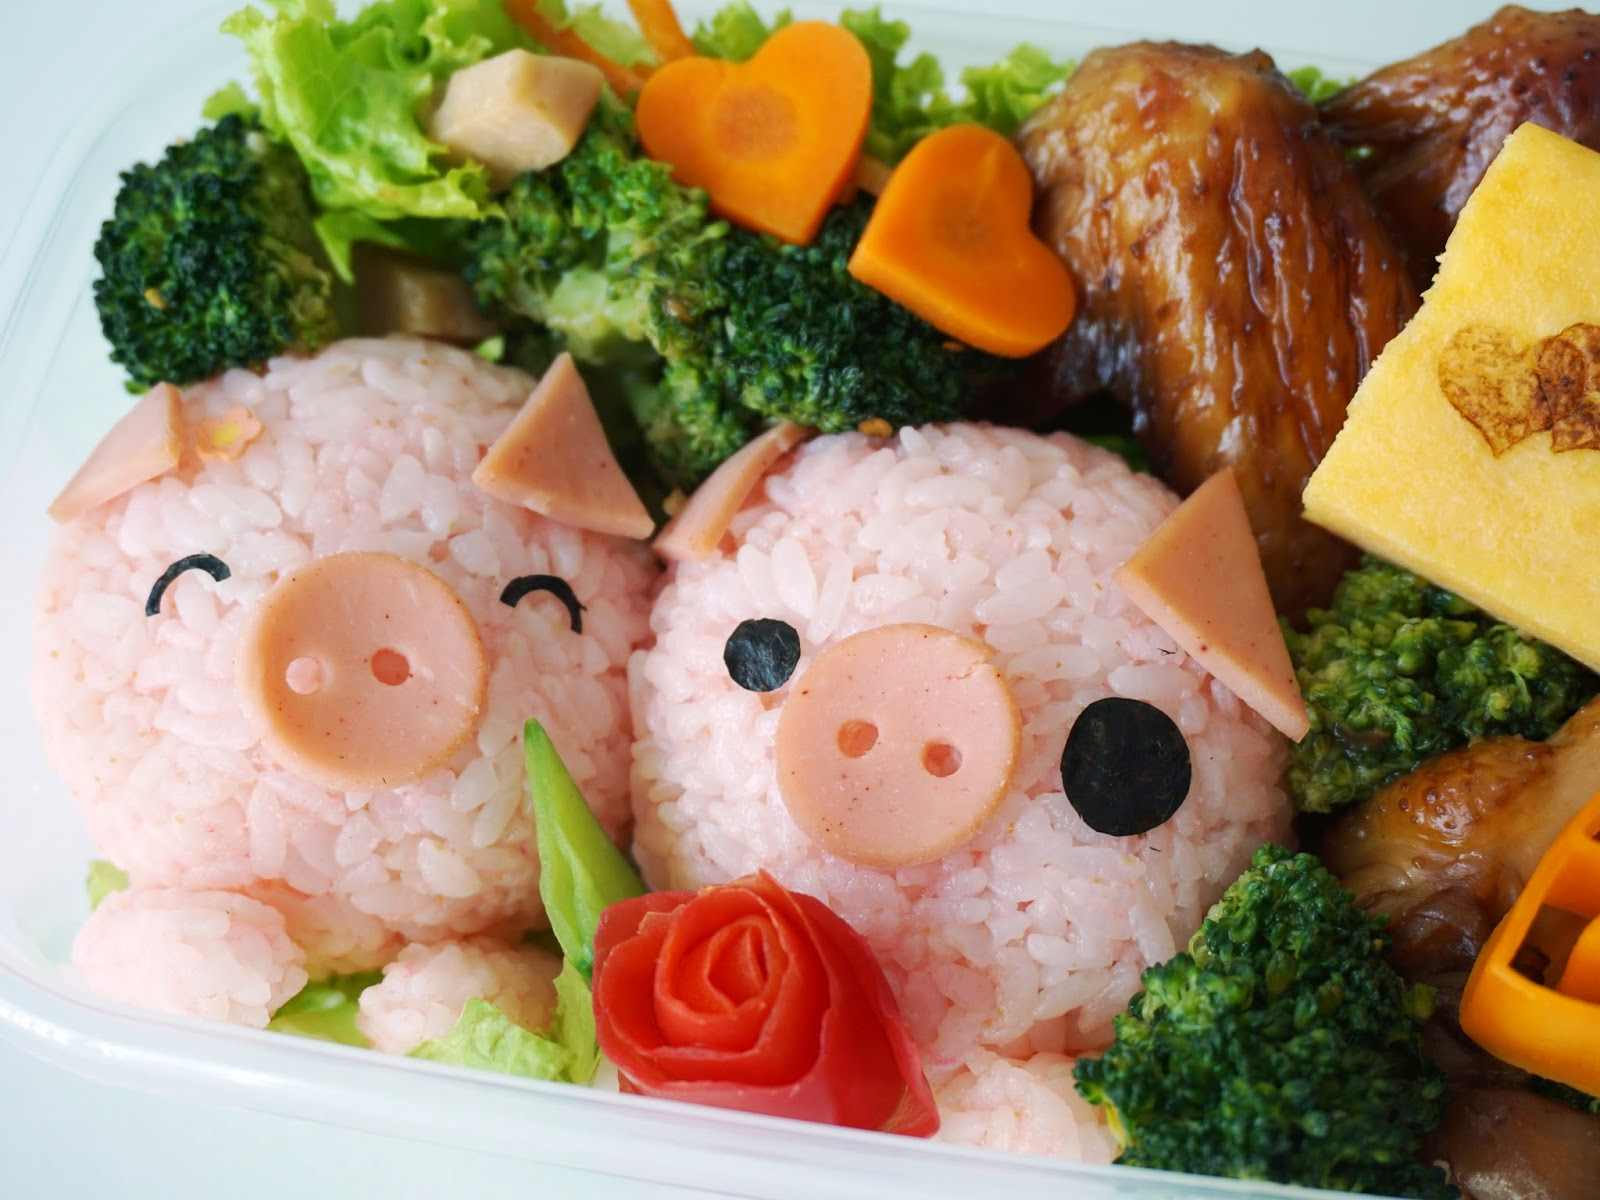 Pinkypiggu kawaii piggies bento recipe youtube video littlemissbento 39 s kawaii bento recipe - Stylish cooking ...